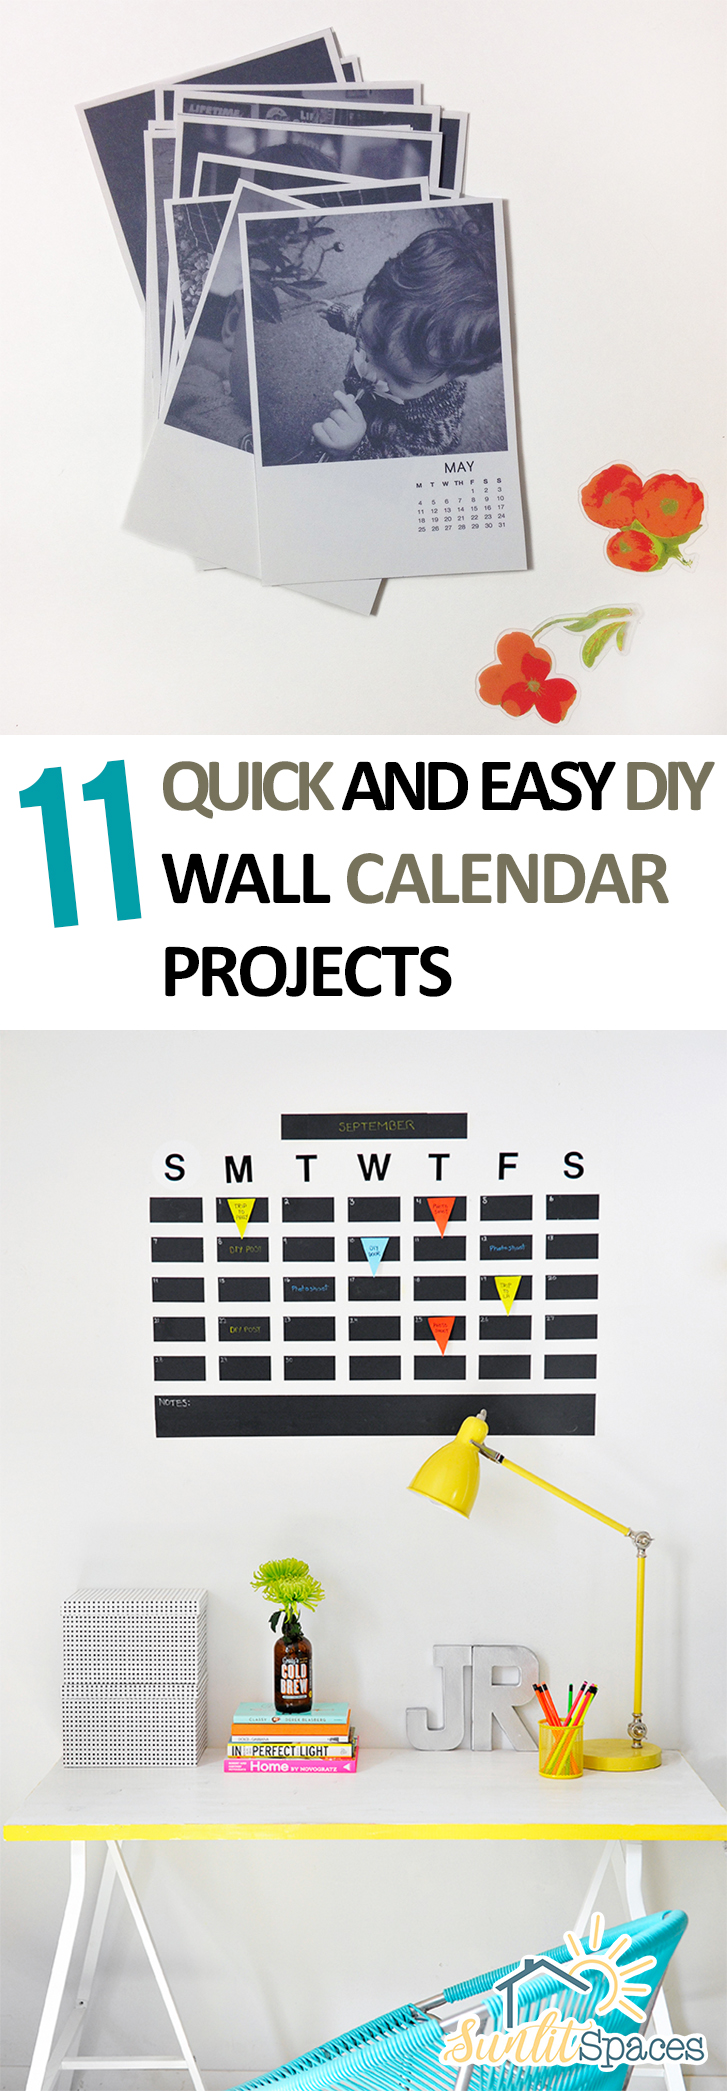 11 quick and easy diy wall calendar projects 11 quick and easy diy wall calendar projects wall calendar diy wall calendar projects solutioingenieria Choice Image